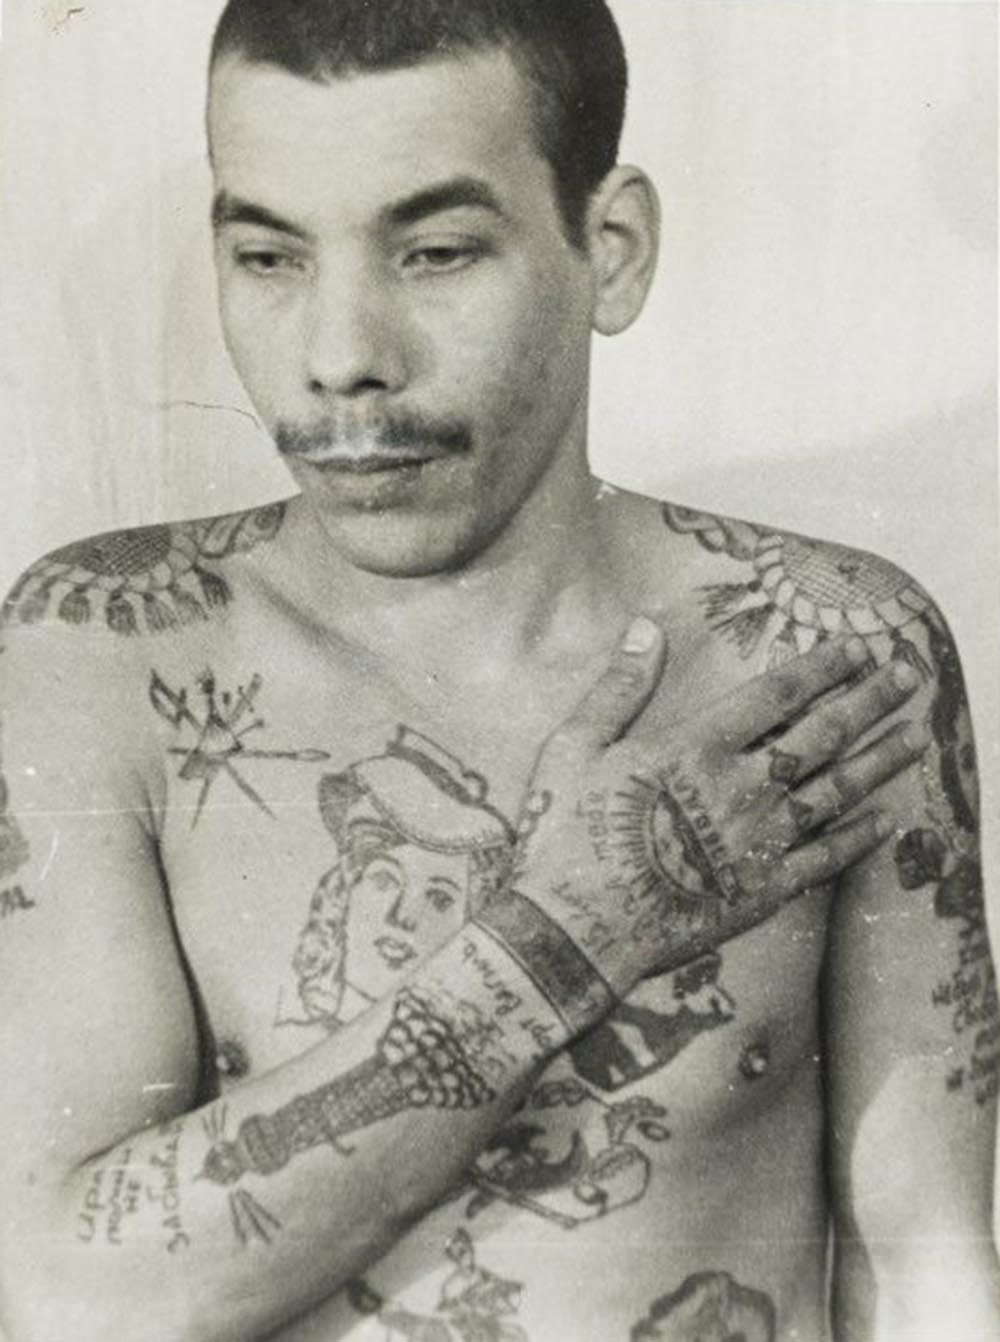 This man is a Muslim; his features also indicate he is not Russian. Text on the arm reads 'Remember me, don't forget me' and 'I waited 15 years for you.' On his stomach (left) is a religious building with a crescent moon. He is not an authoritative thief, but has tried to imitate them with his tattoos to increase his standing within the prison. The lighthouse on his right arm denotes a pursuit of freedom. Each wrist manacle indicates a sentence of more than five years in prison.